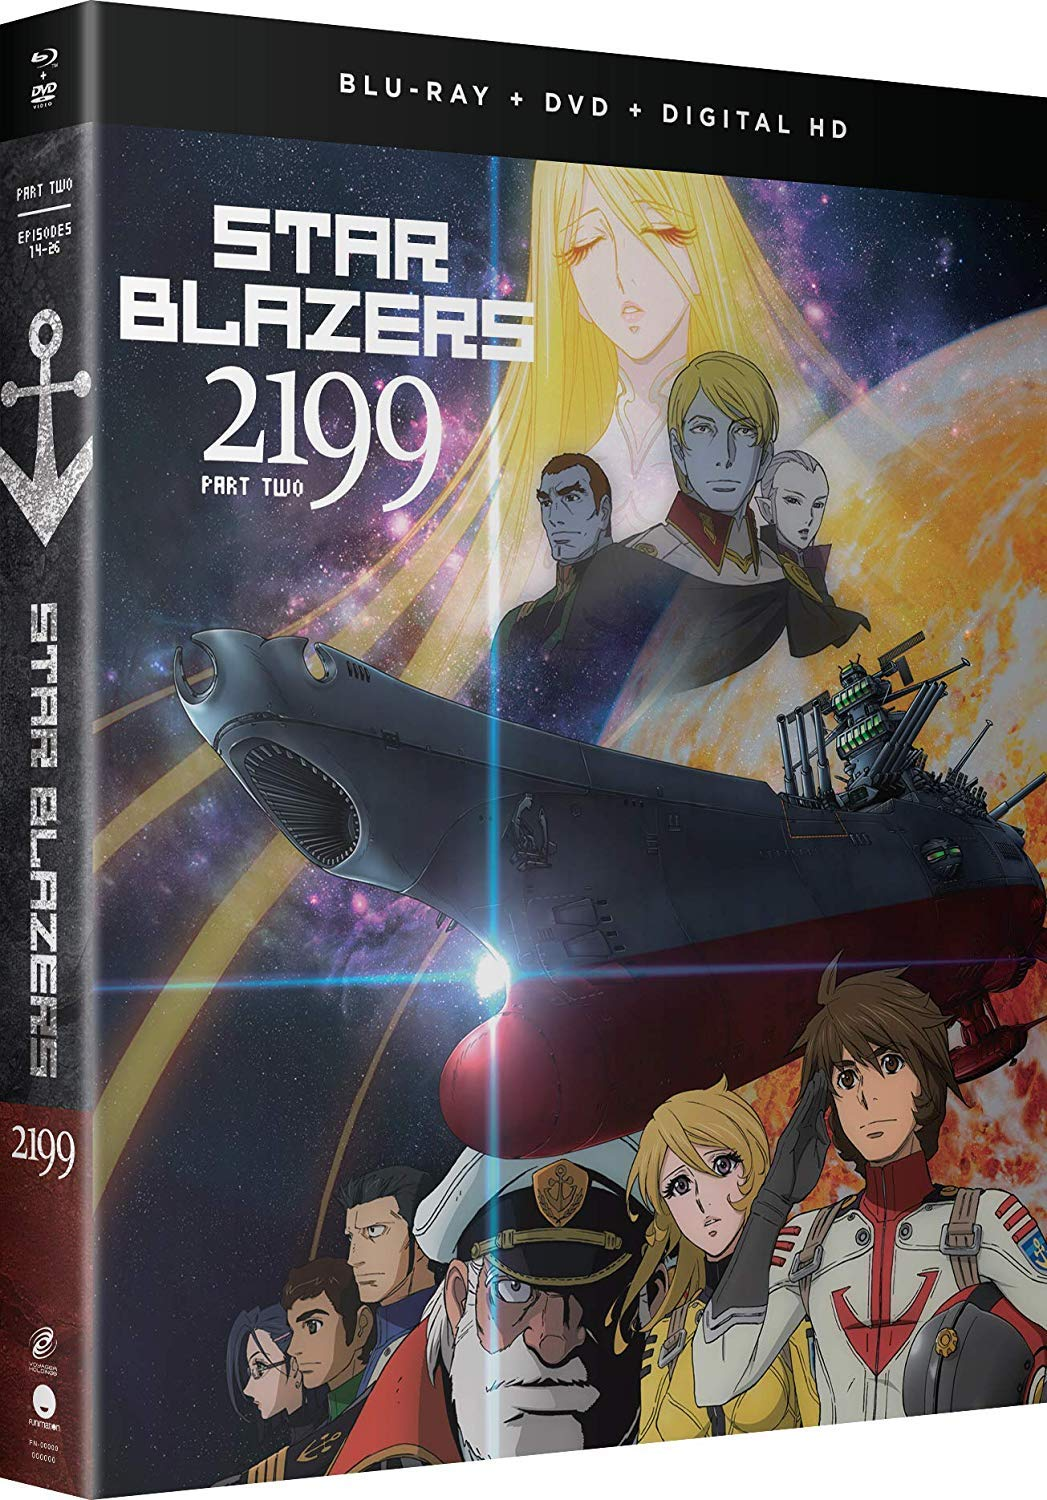 Amazon.com: Star Blazers 2199: Space Battleship Yamato – Part Two  [Blu-ray]: Christopher Wehkamp, Mallorie Rodak, Ricco Fajardo, Yutaka  Izubuchi, ...